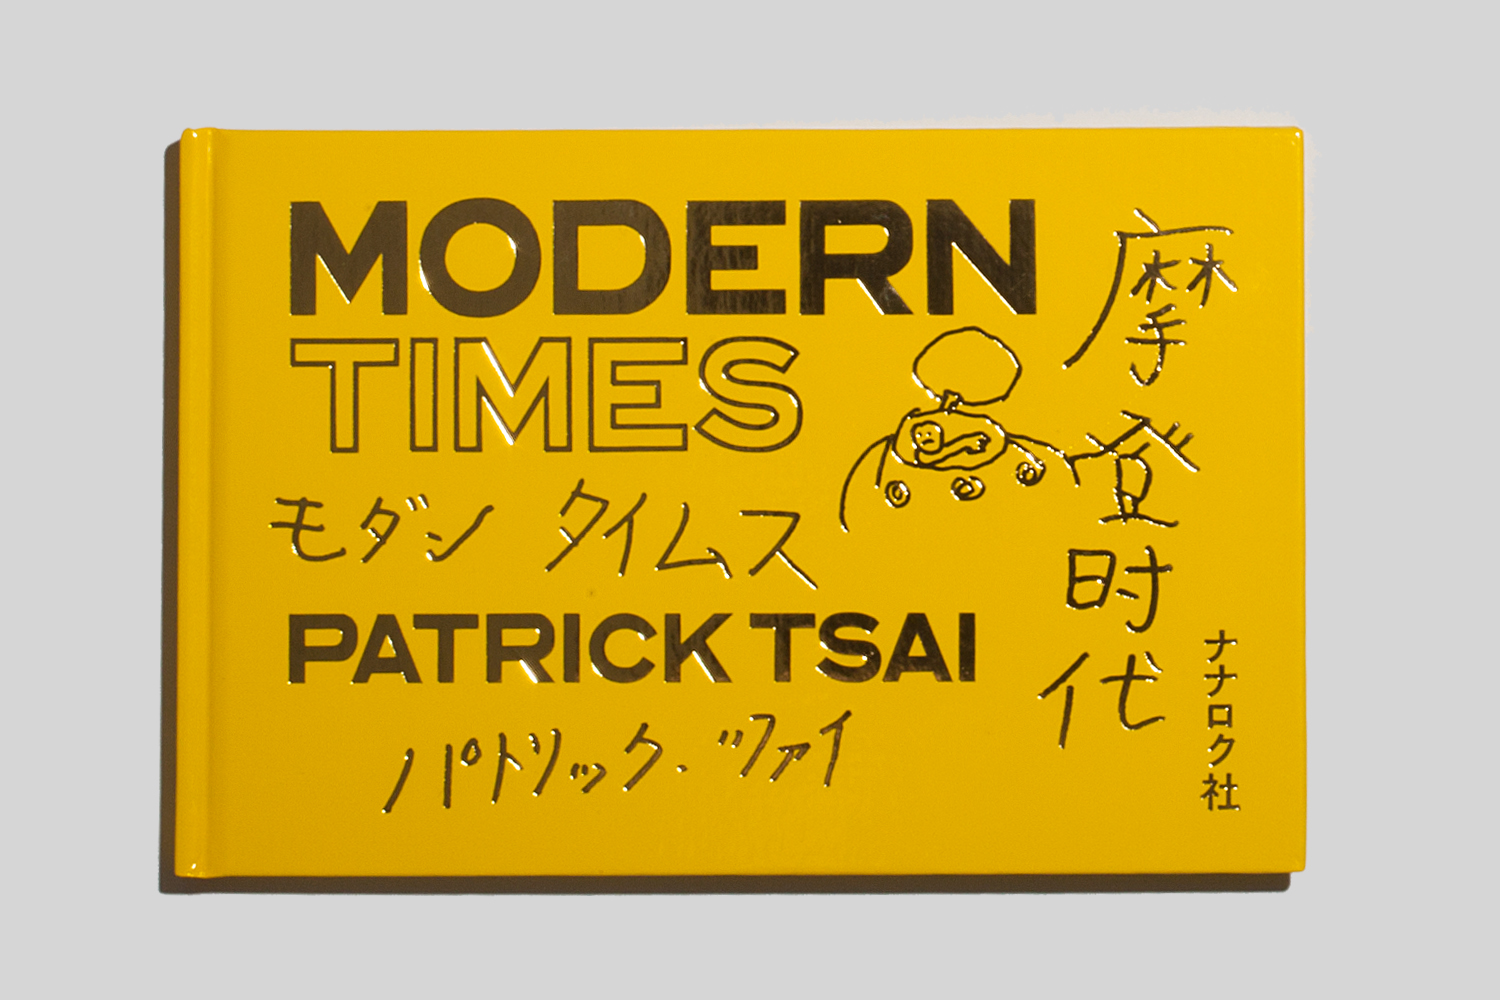 Modern Times by Patrick Tsai, selected by Susan Bright, curator and writer